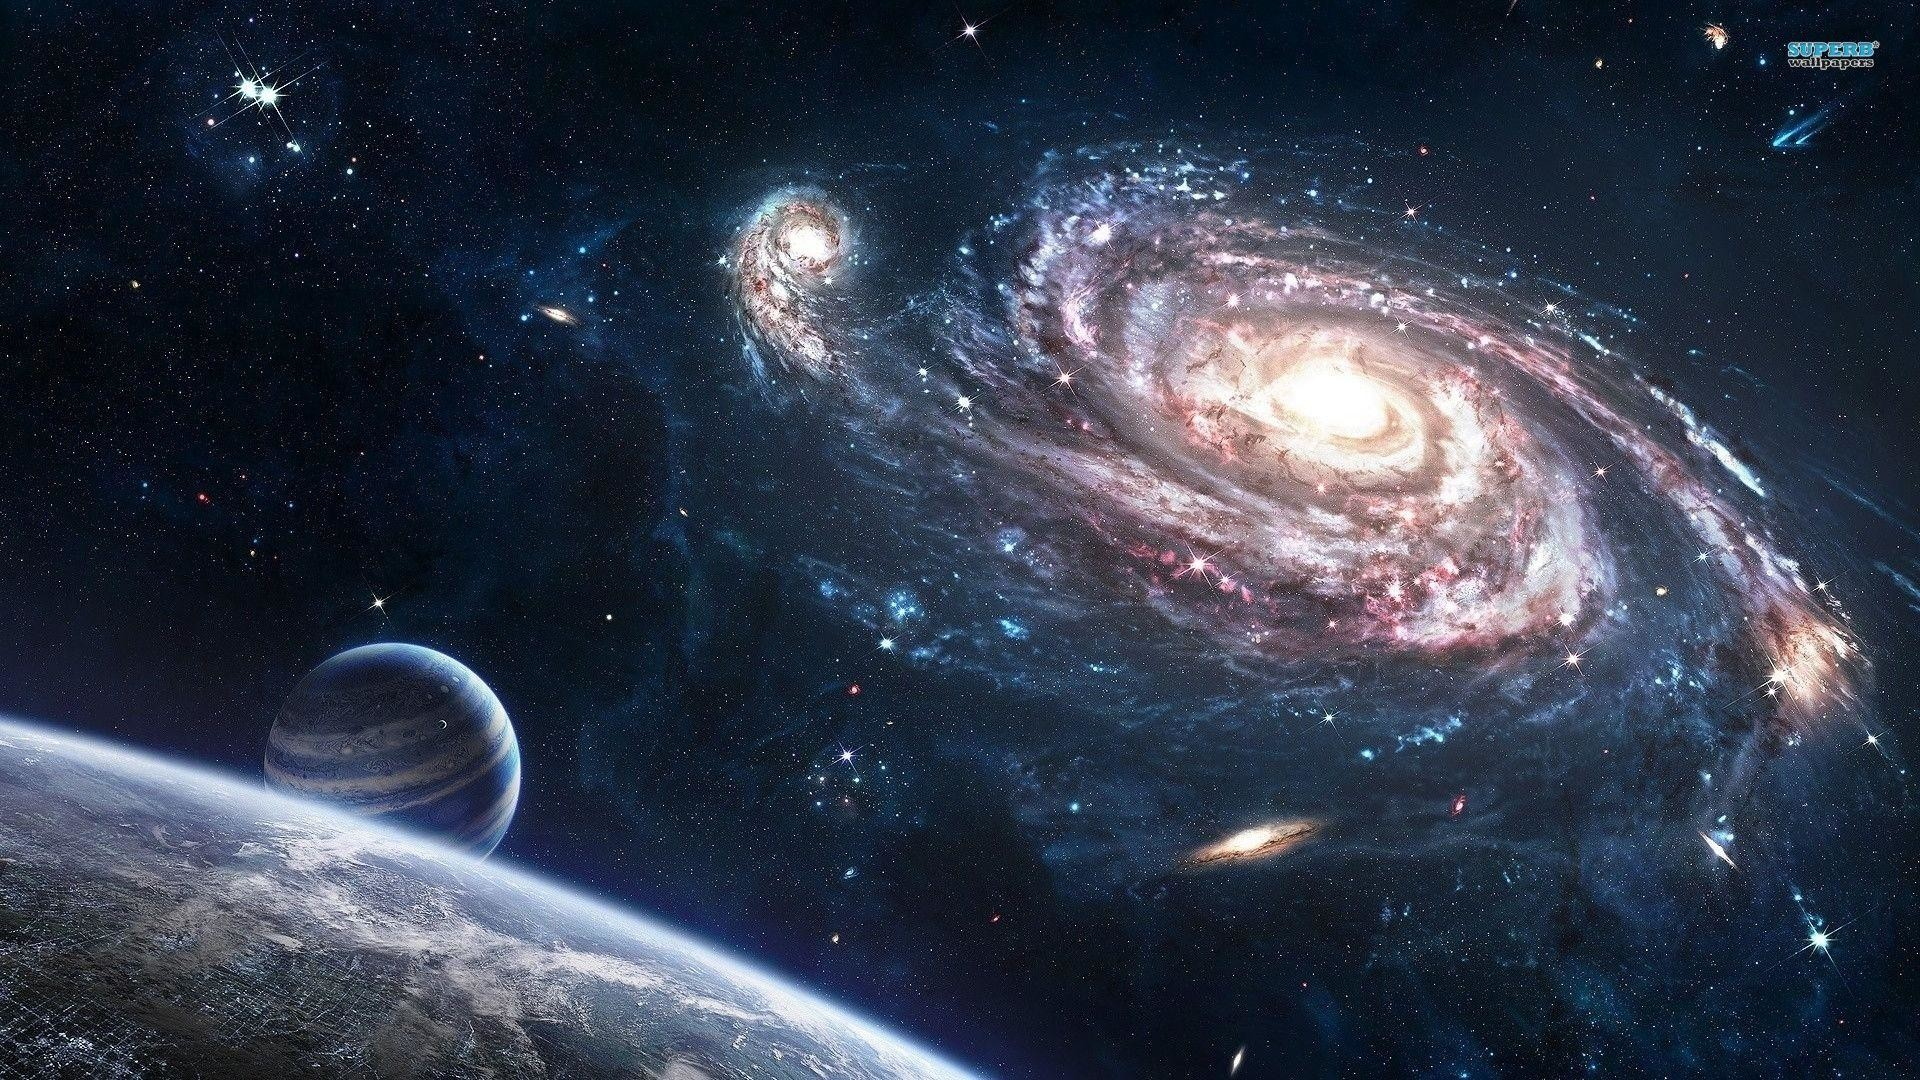 Galaxy Wallpaper 1920x1080 80 Images